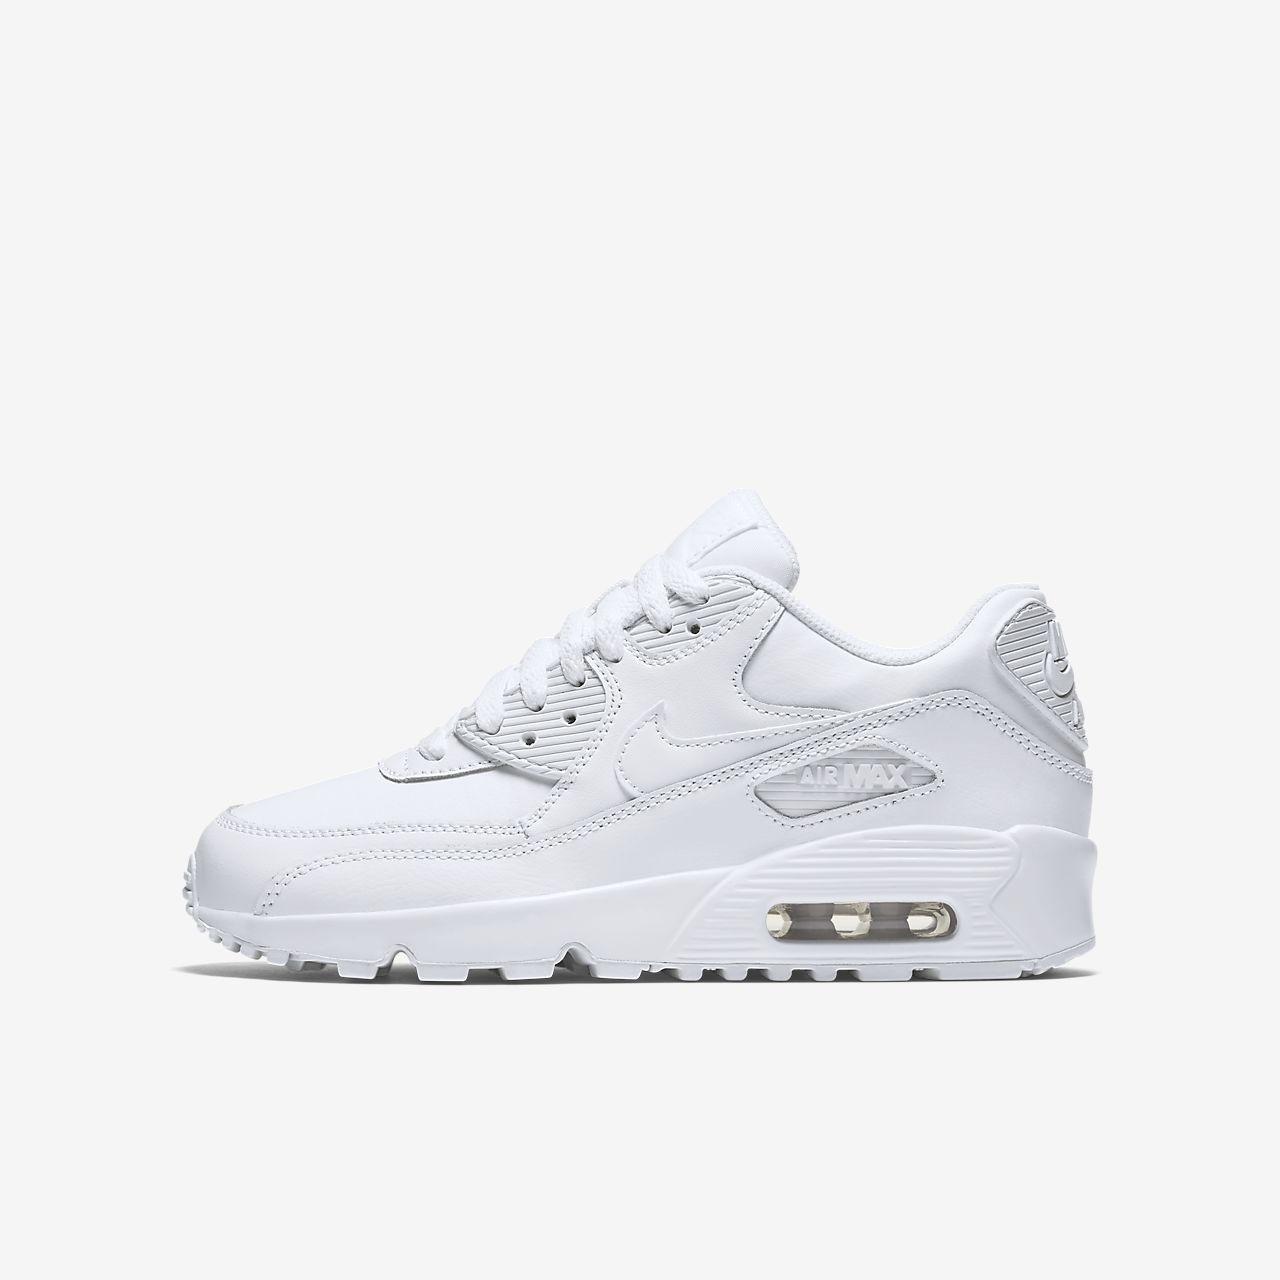 Chaussure Nike Air Max 90 Leather pour Enfant plus âgé